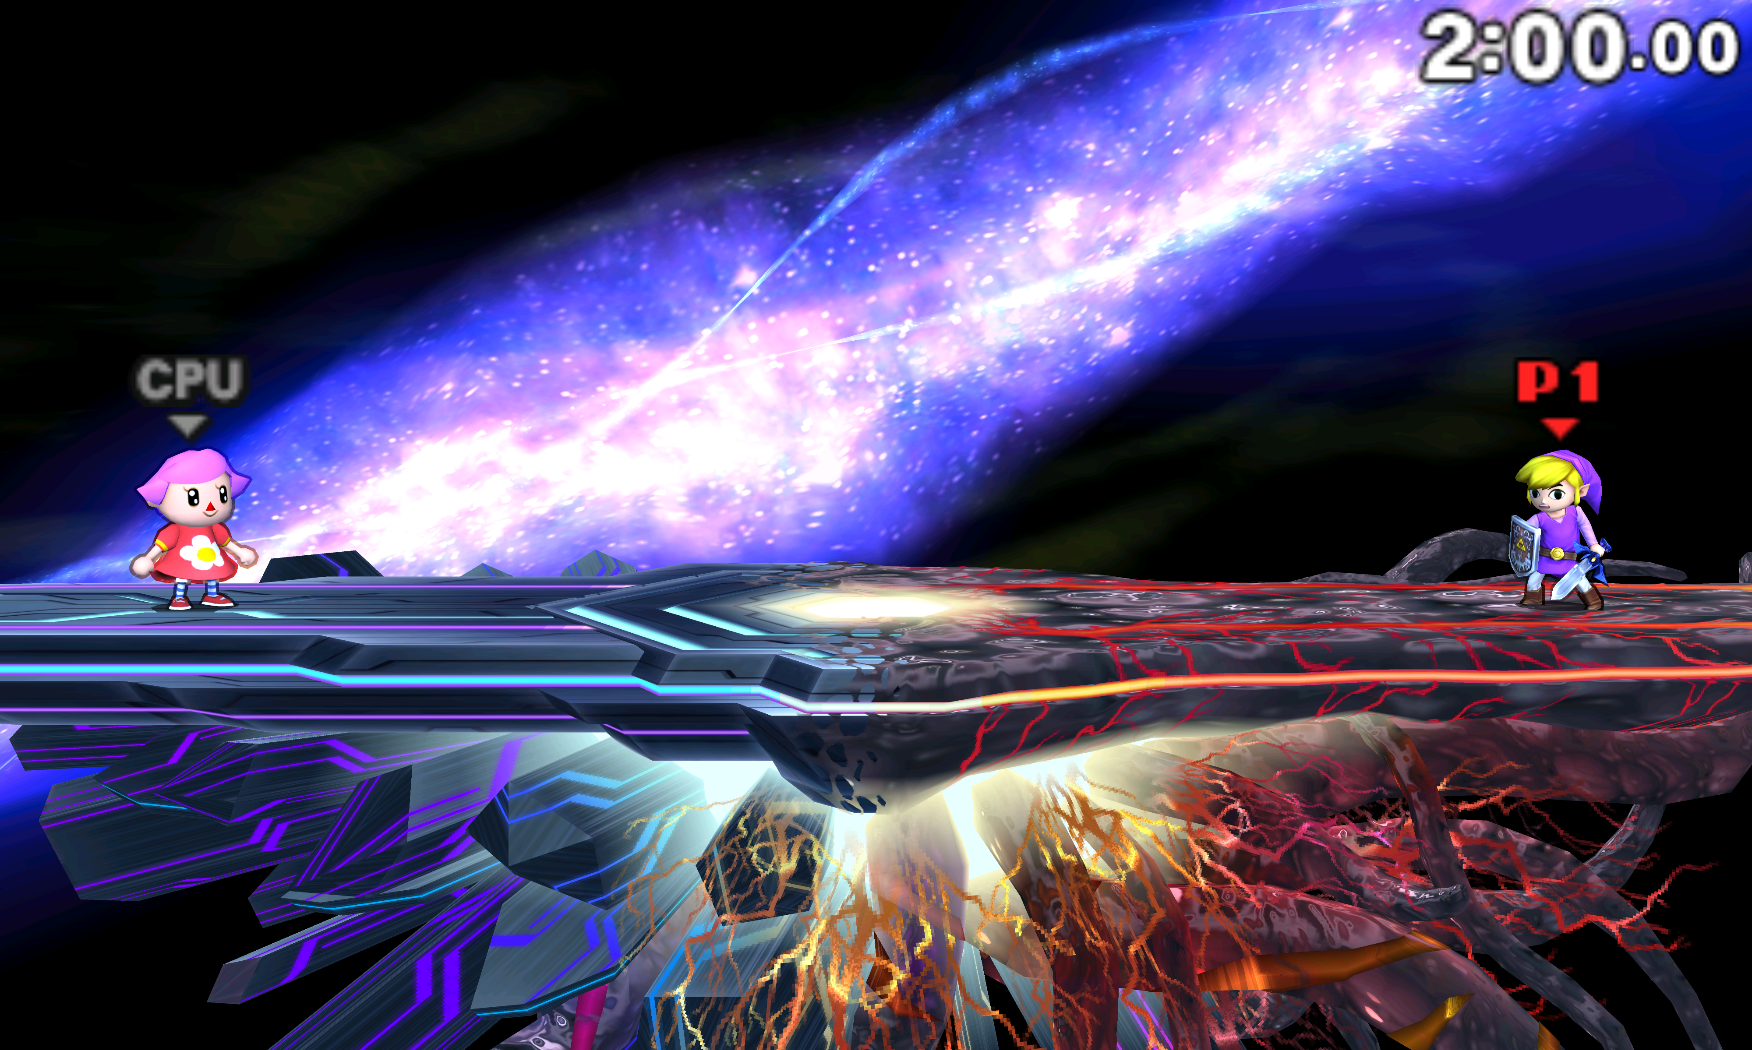 Super Smash Bros. for 3DS after the new lighting features